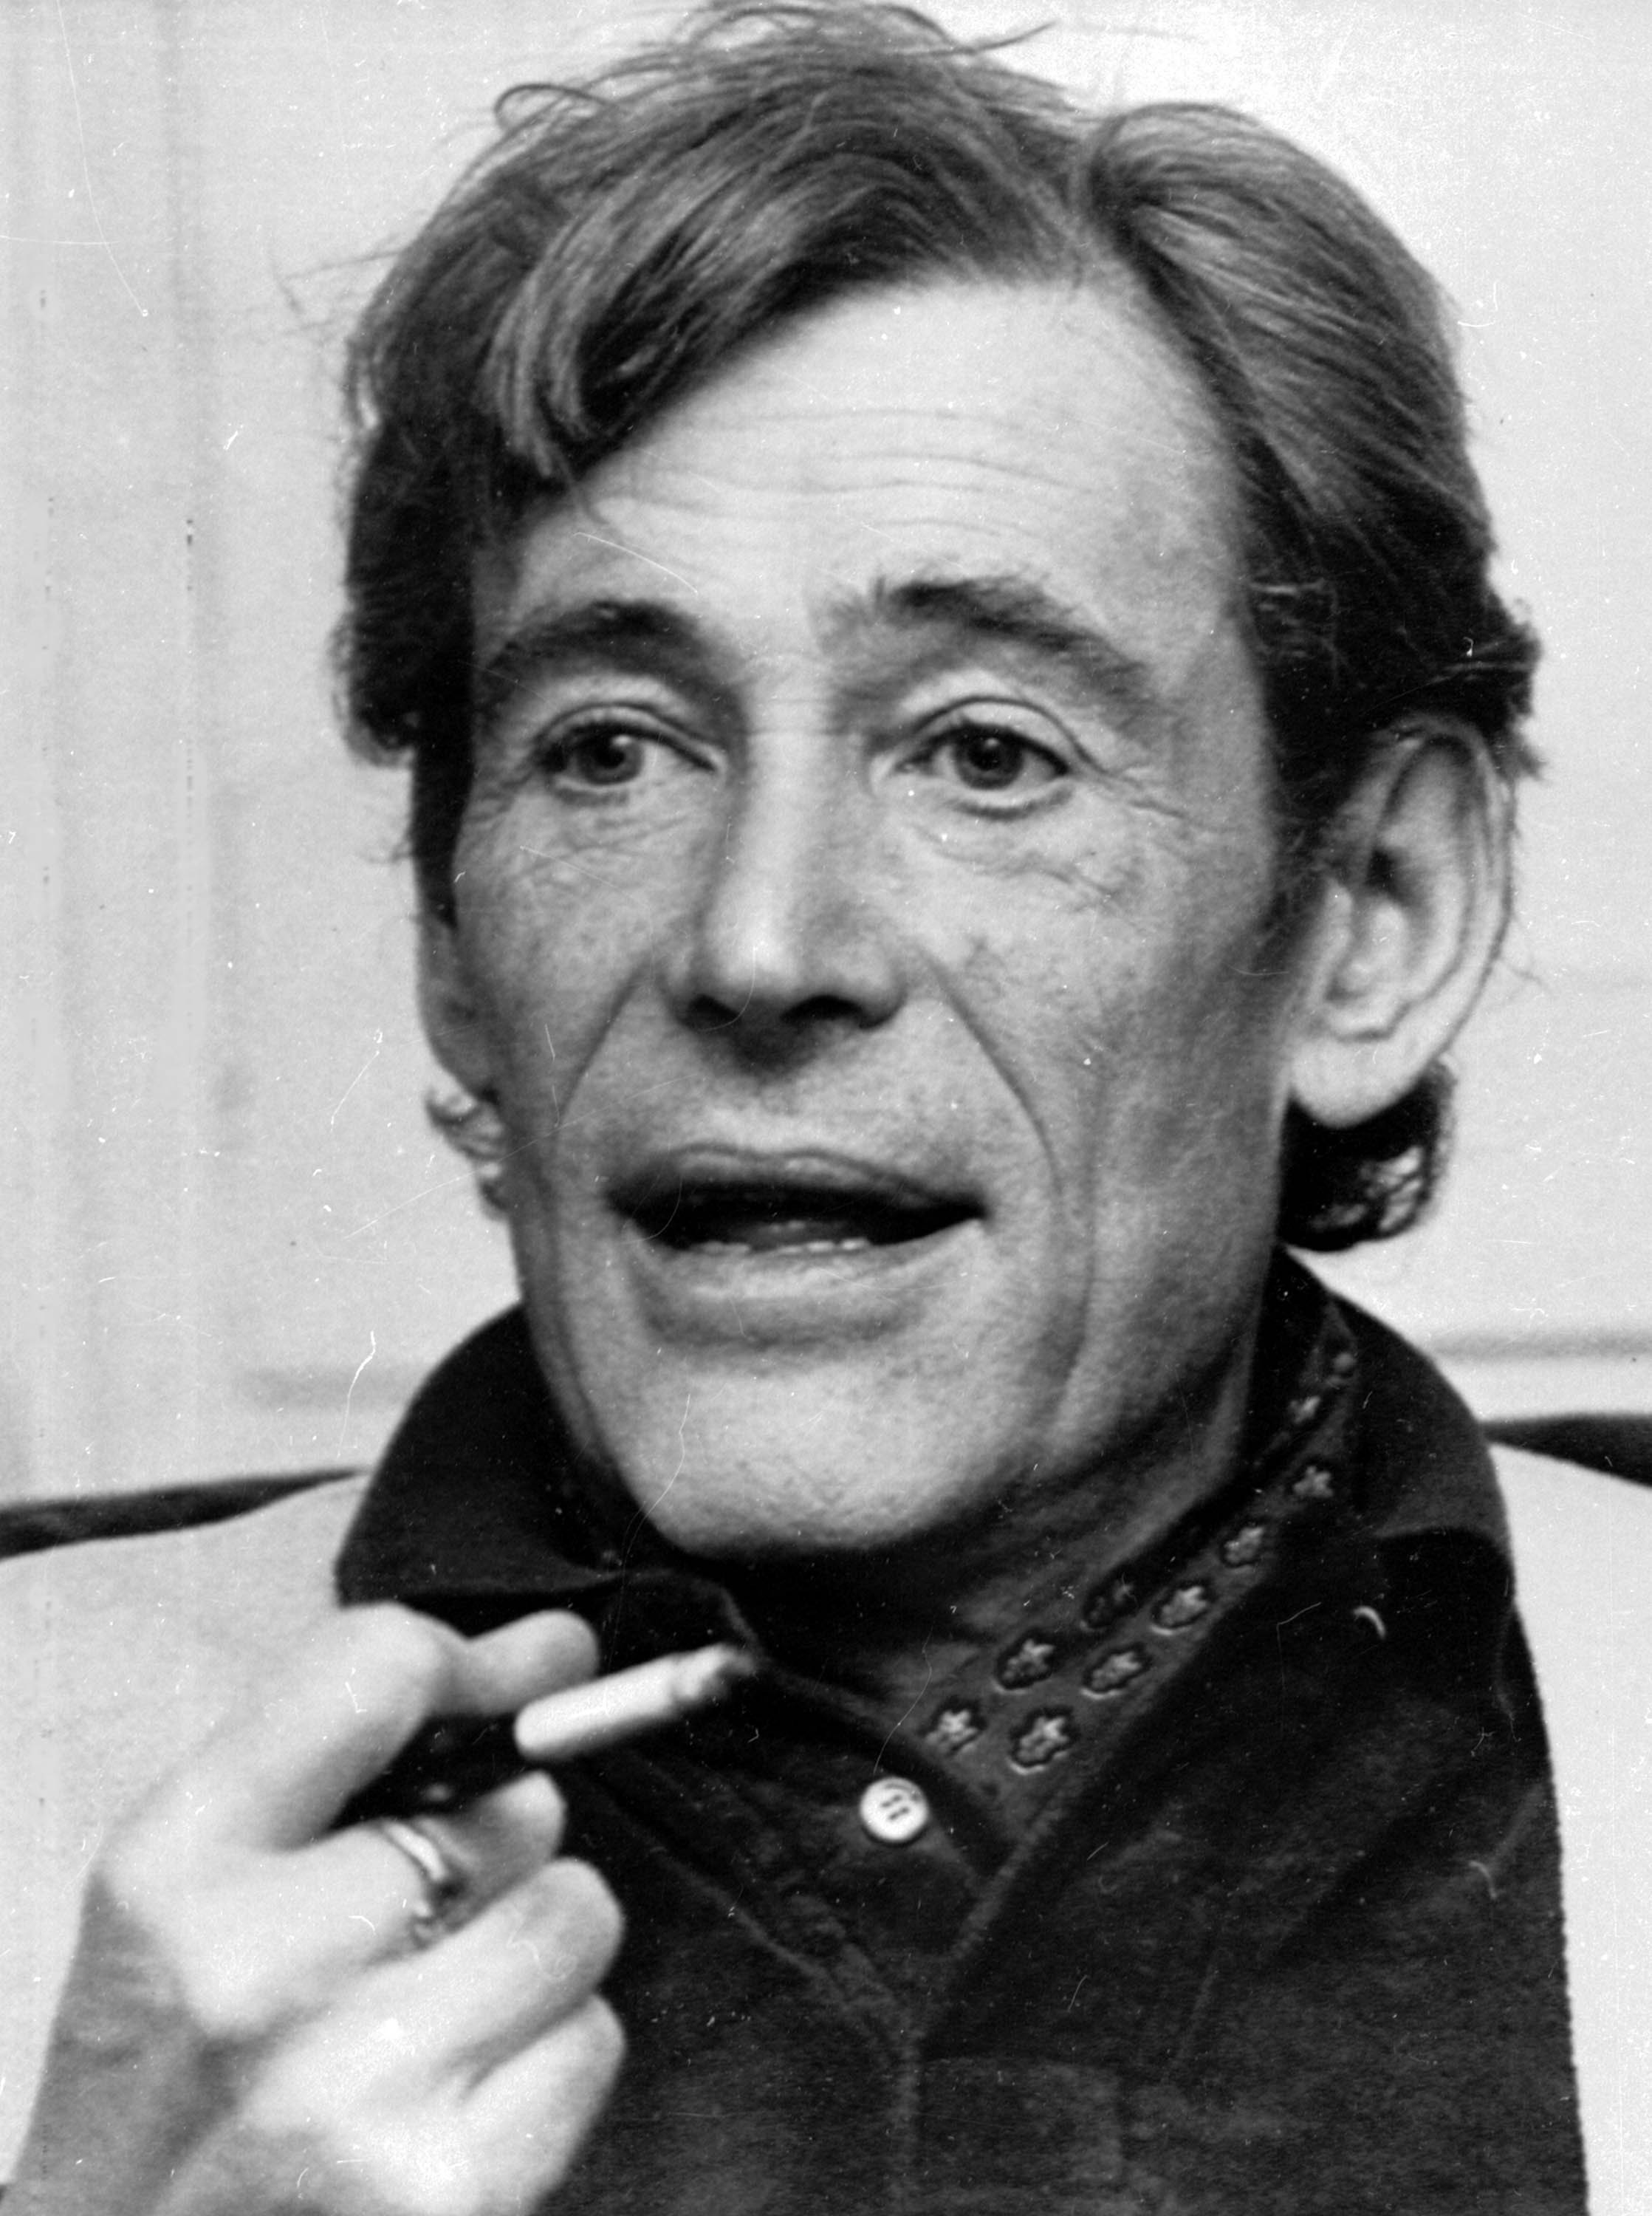 Actor Peter O Toole Best Known For His Starring Role In